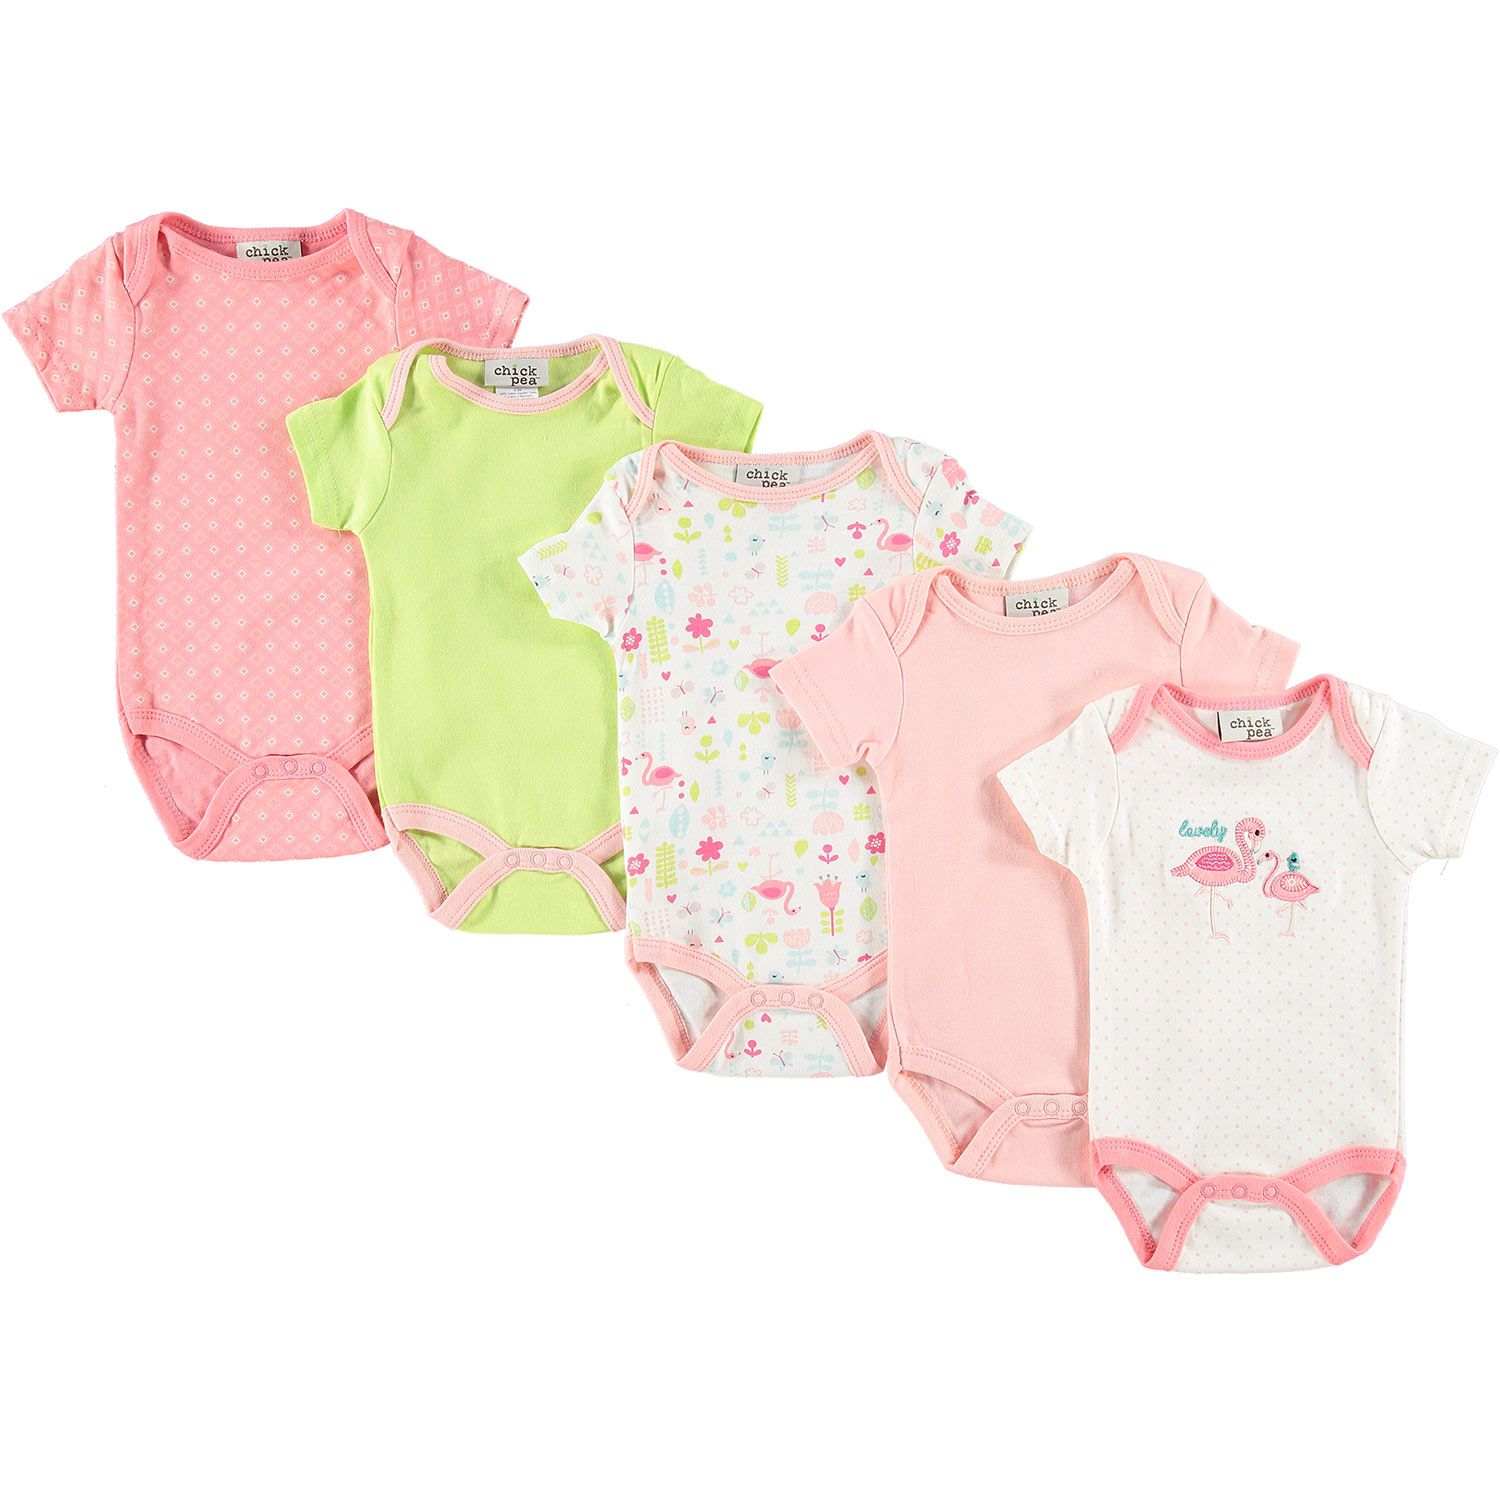 Who Sells Chickpea Baby Clothes Newest and Cutest Baby Clothing